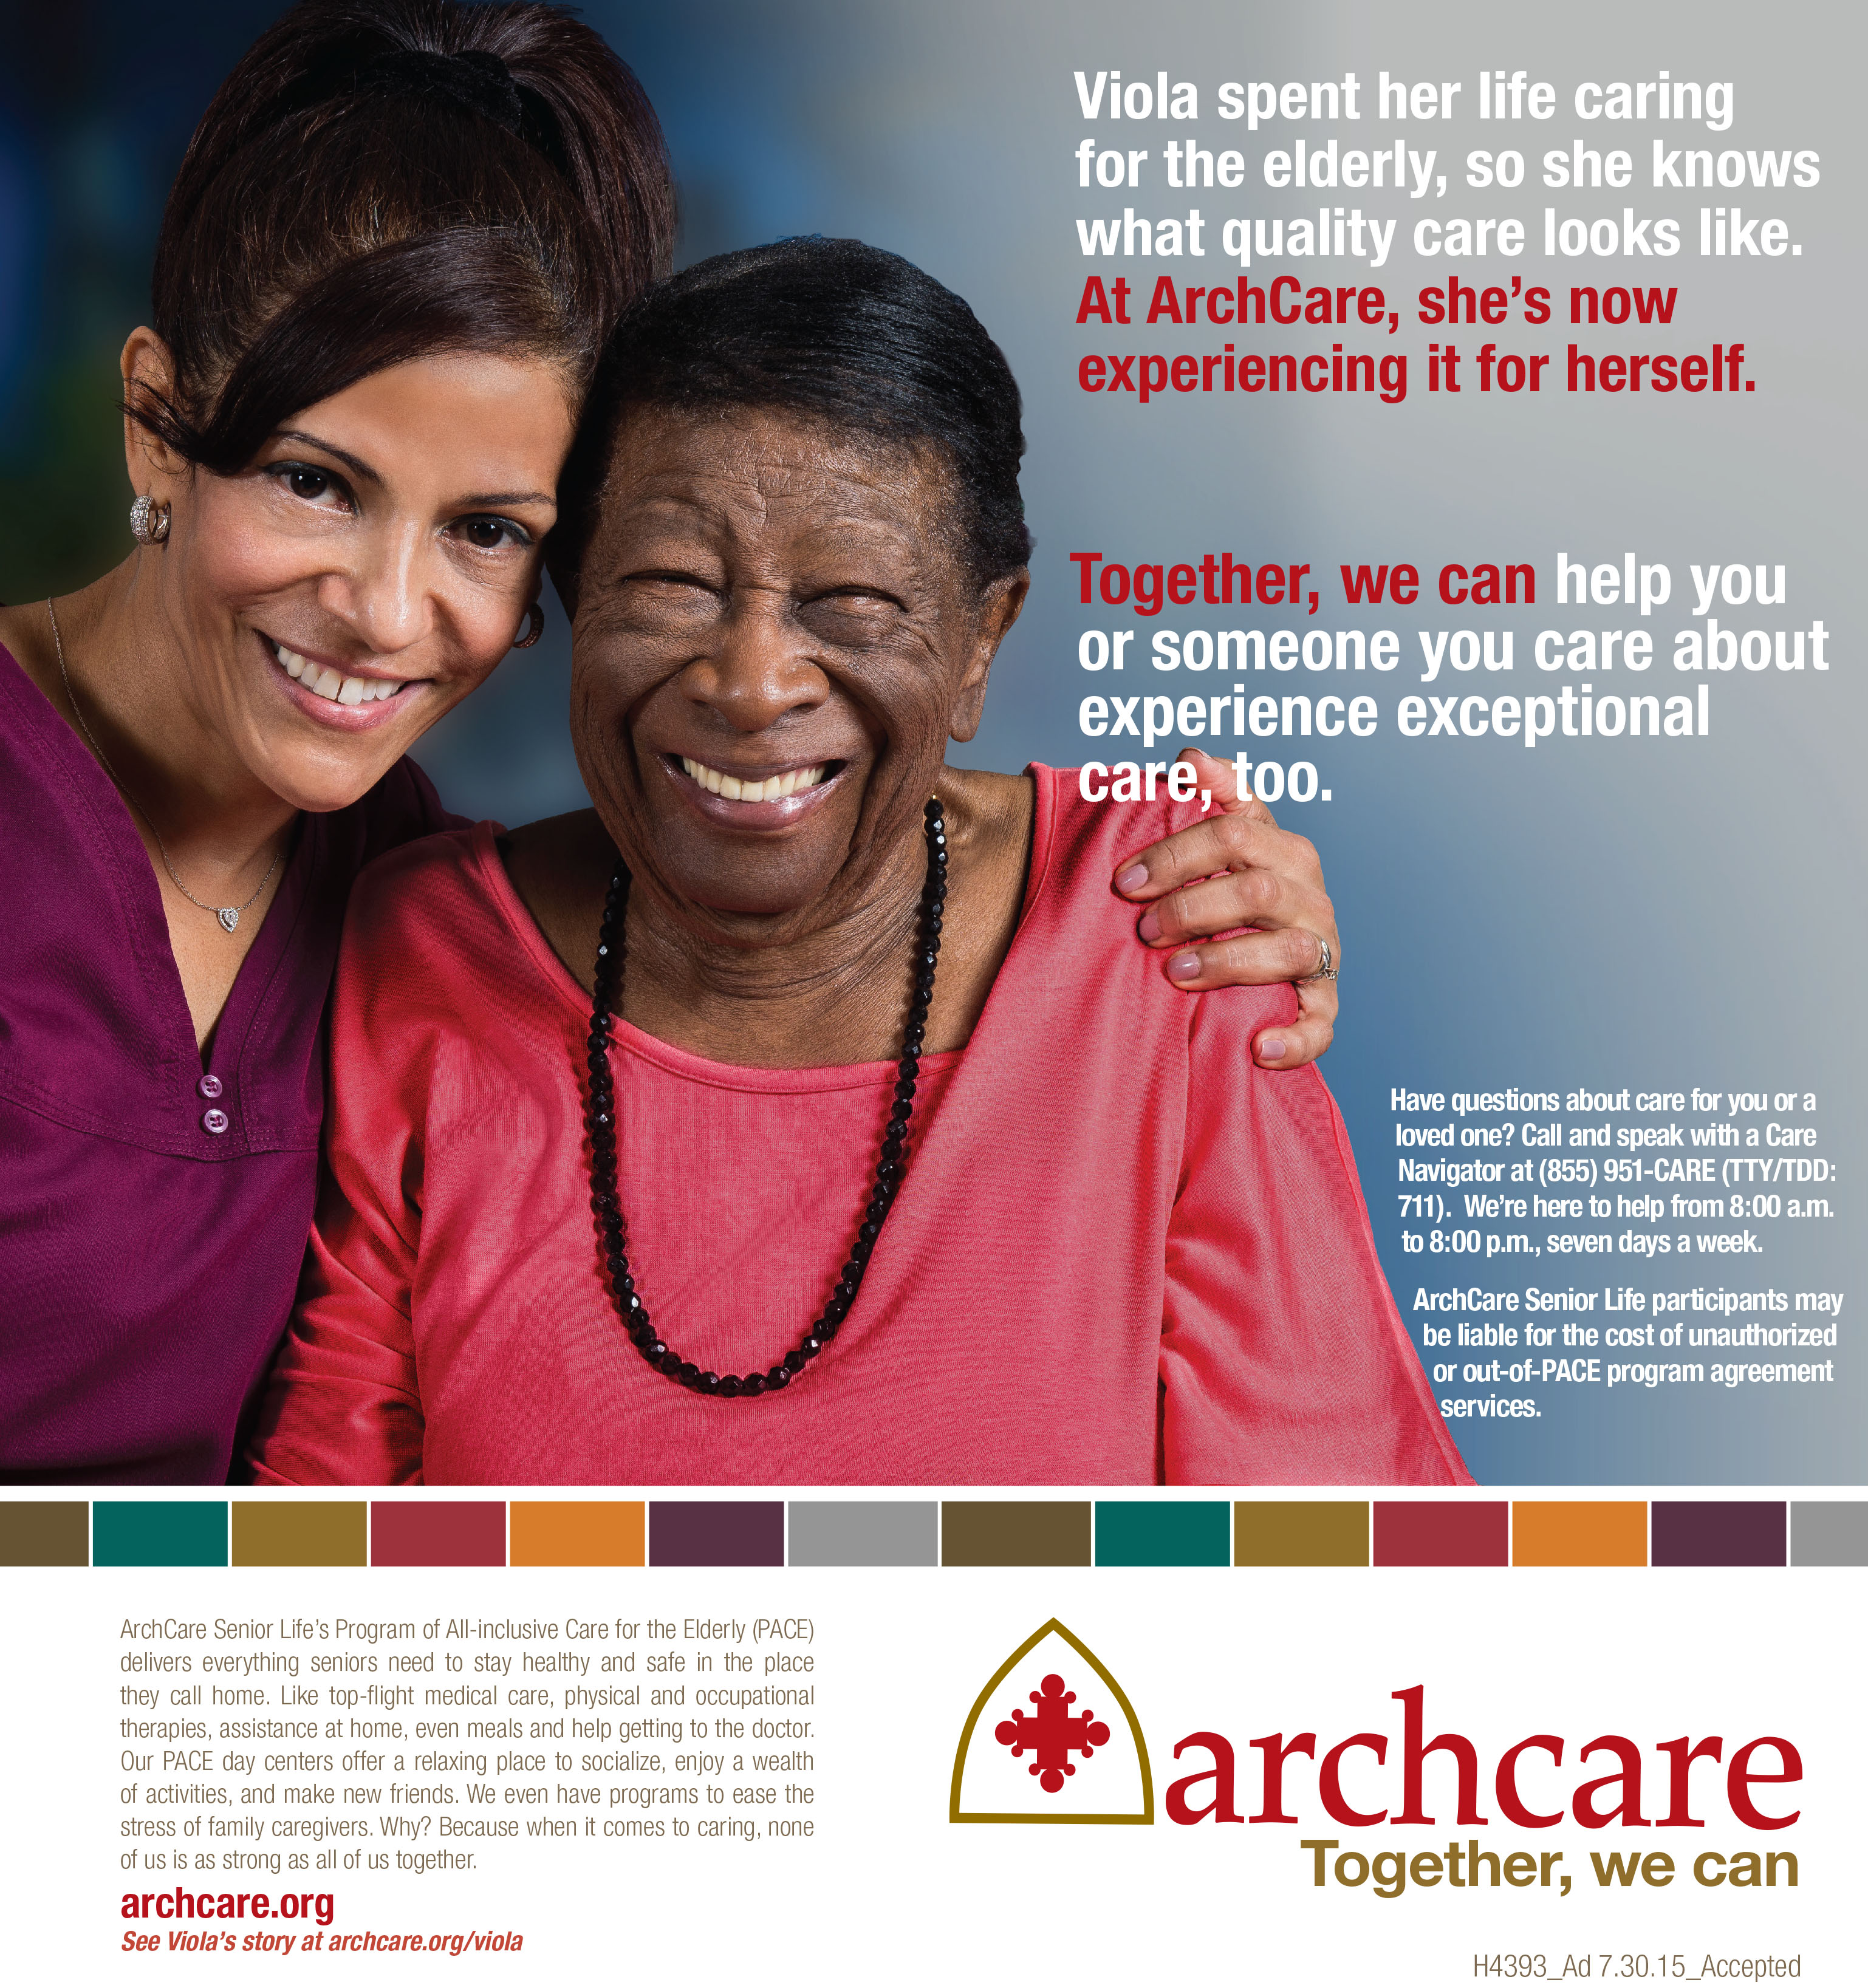 Can your elderly grandparents qualify for the PACE program?